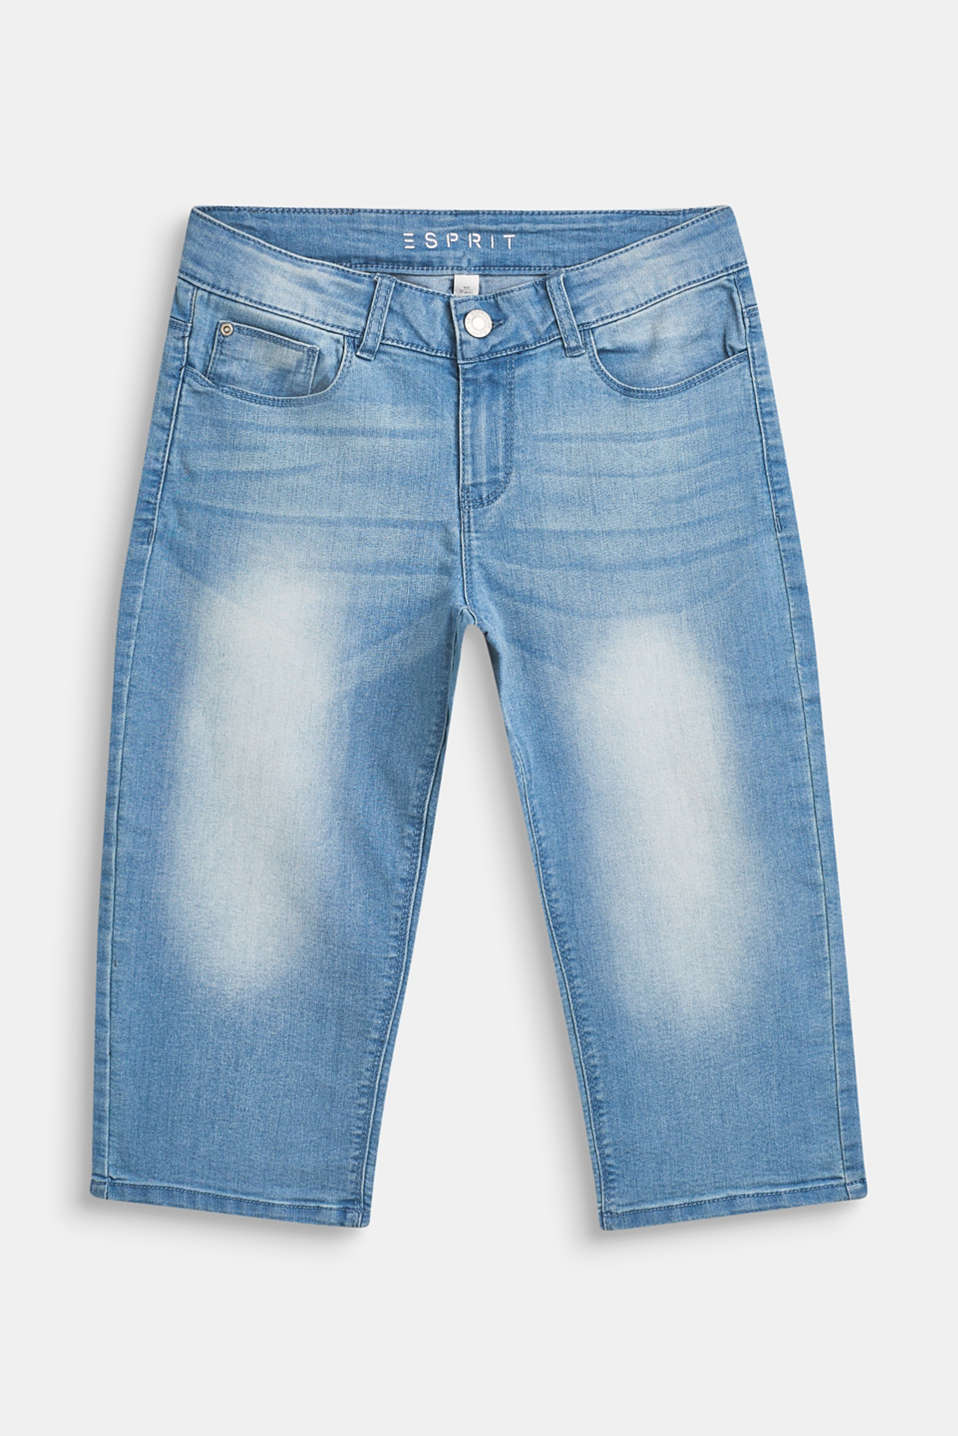 Esprit - Superstretch-Jeans in Capri-Länge